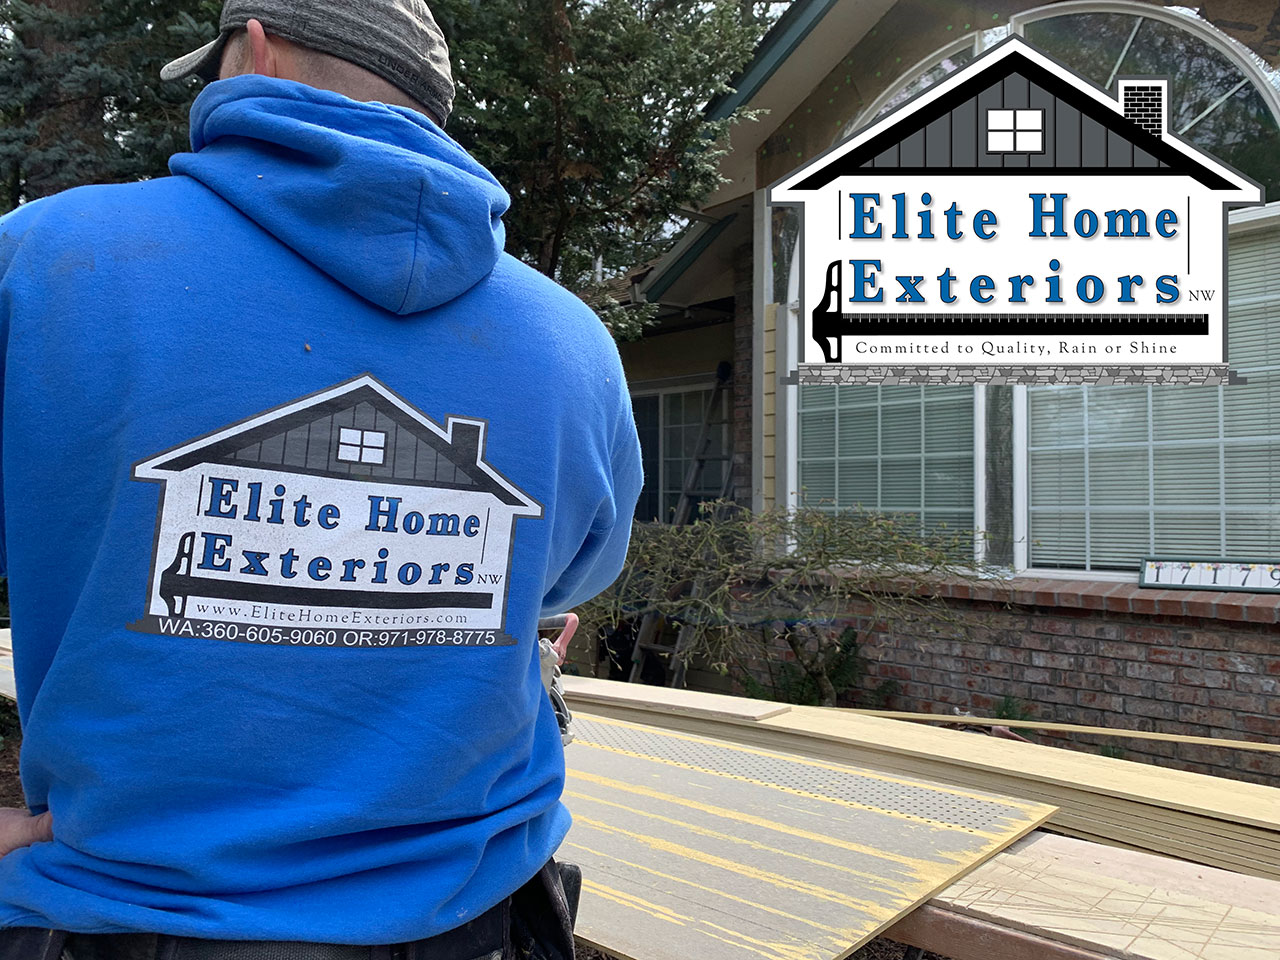 Elite Home Exteriors Nw Professional Siding Installers